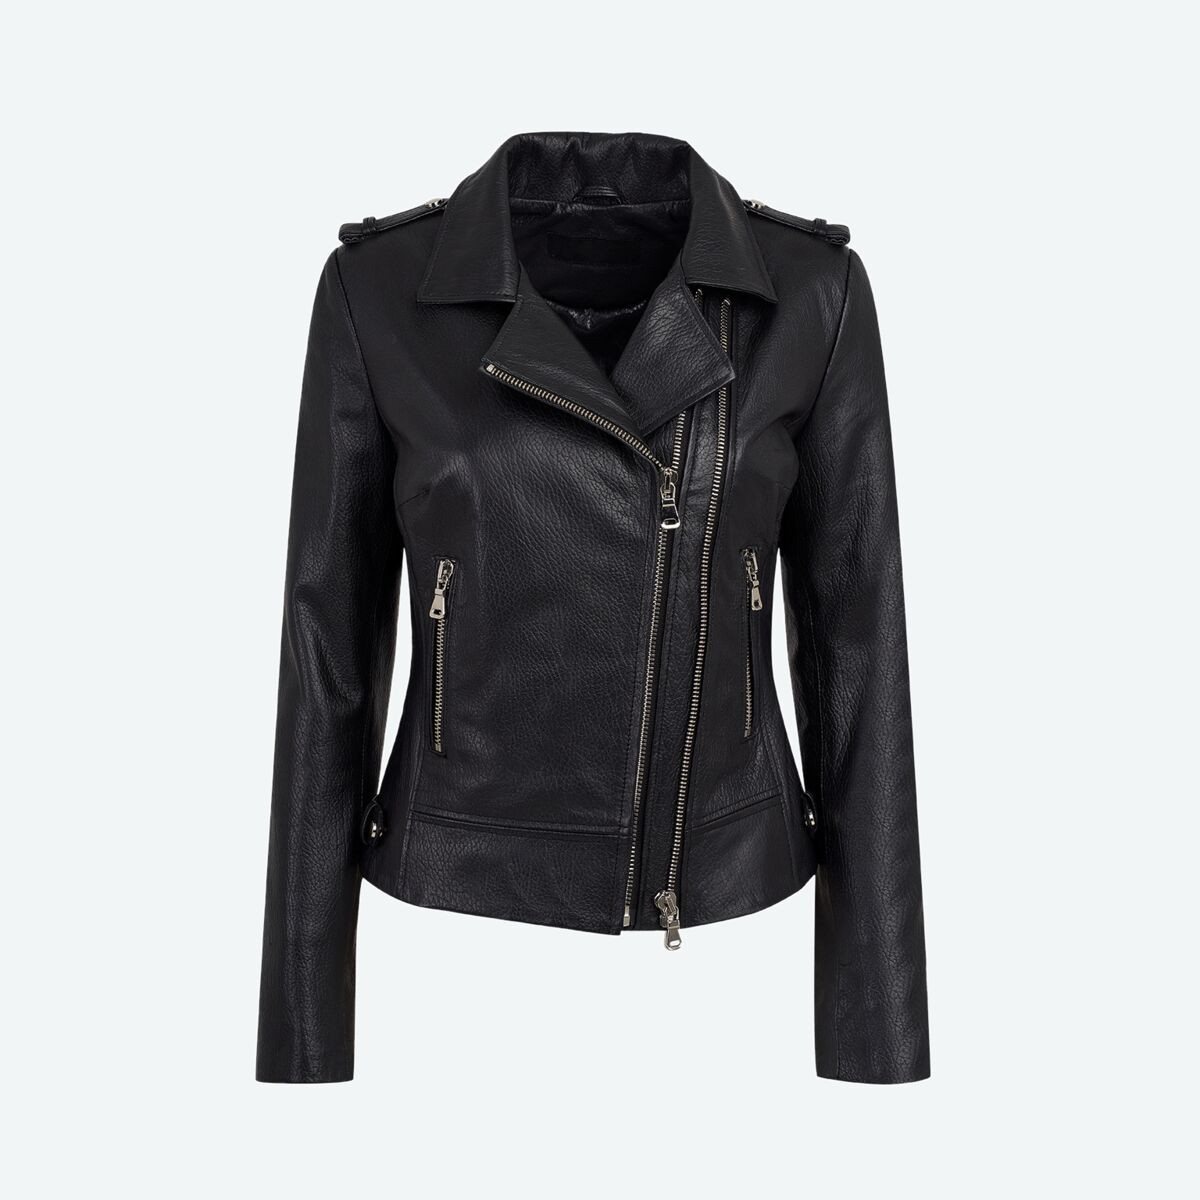 Collared Biker Leather Jacket